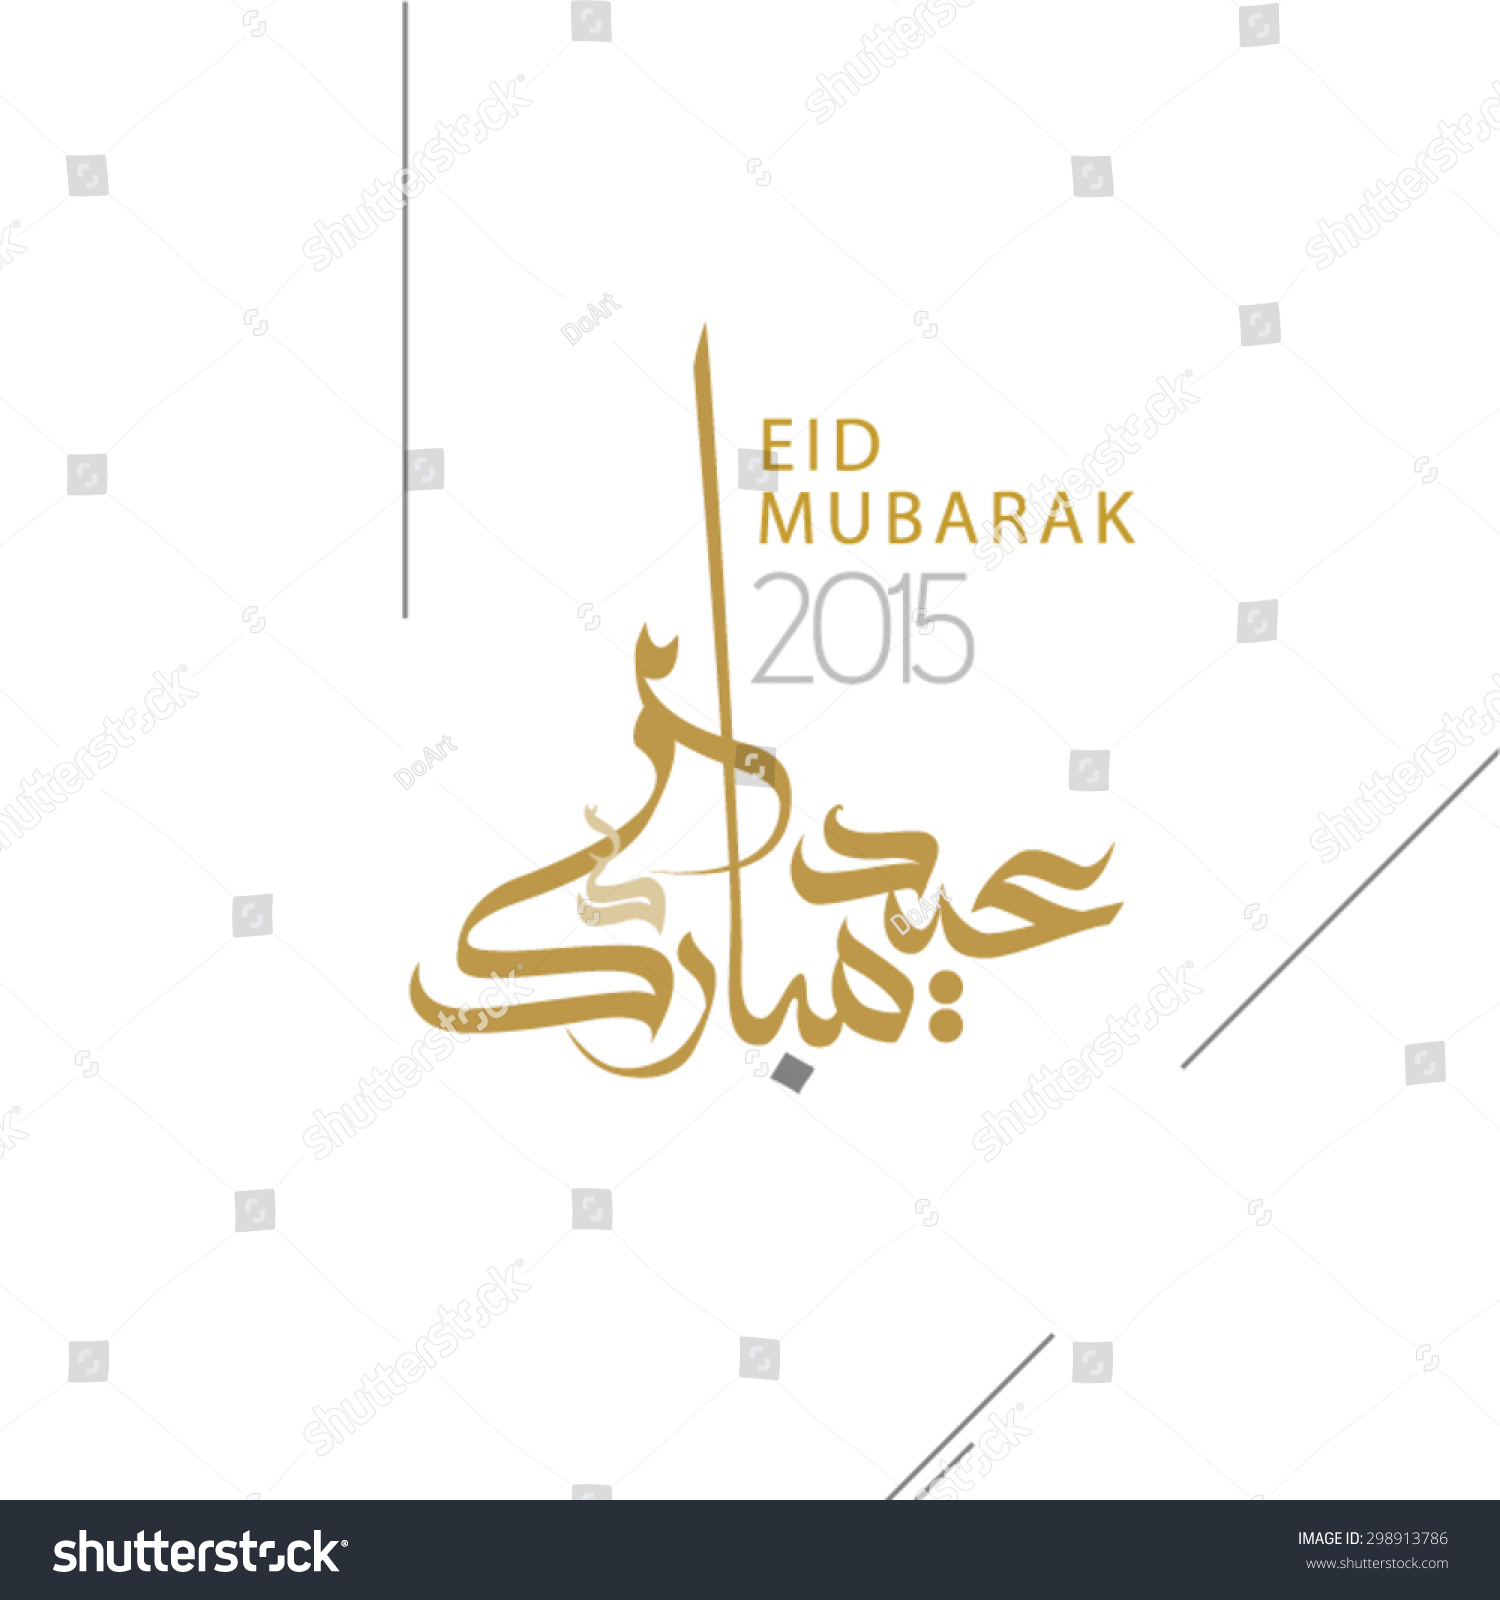 Eid mubarak in arabic calligraphy imgkid the